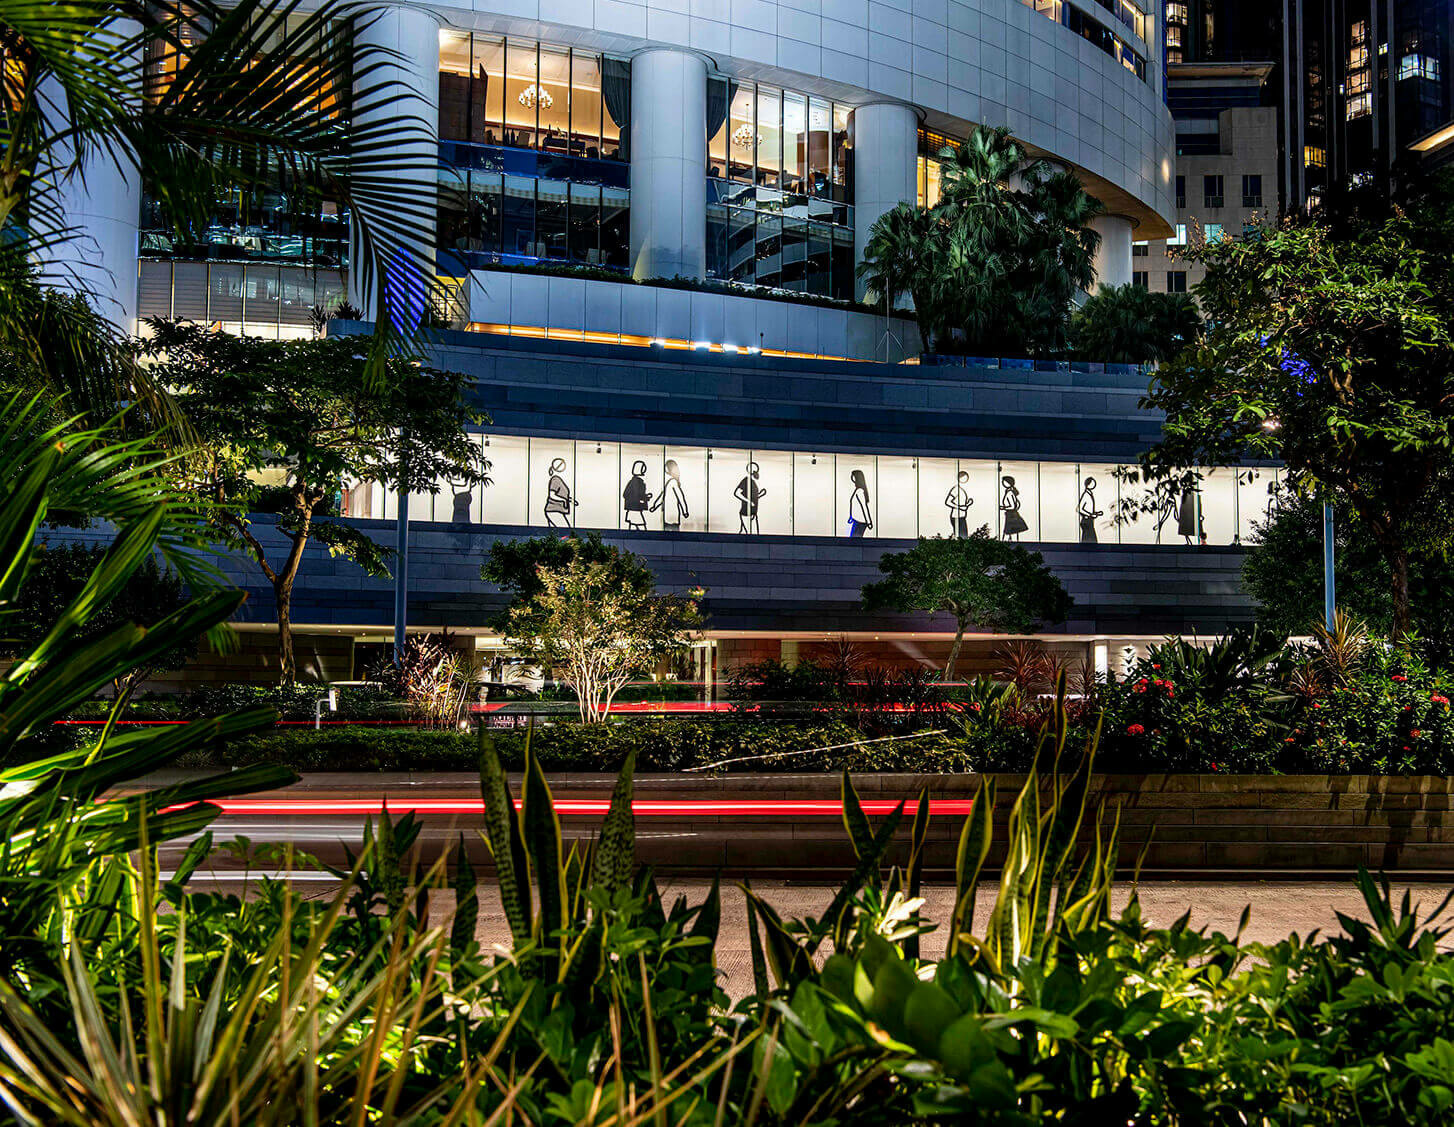 New permanent installations by Julian Opie at Pacific Place Hong Kong